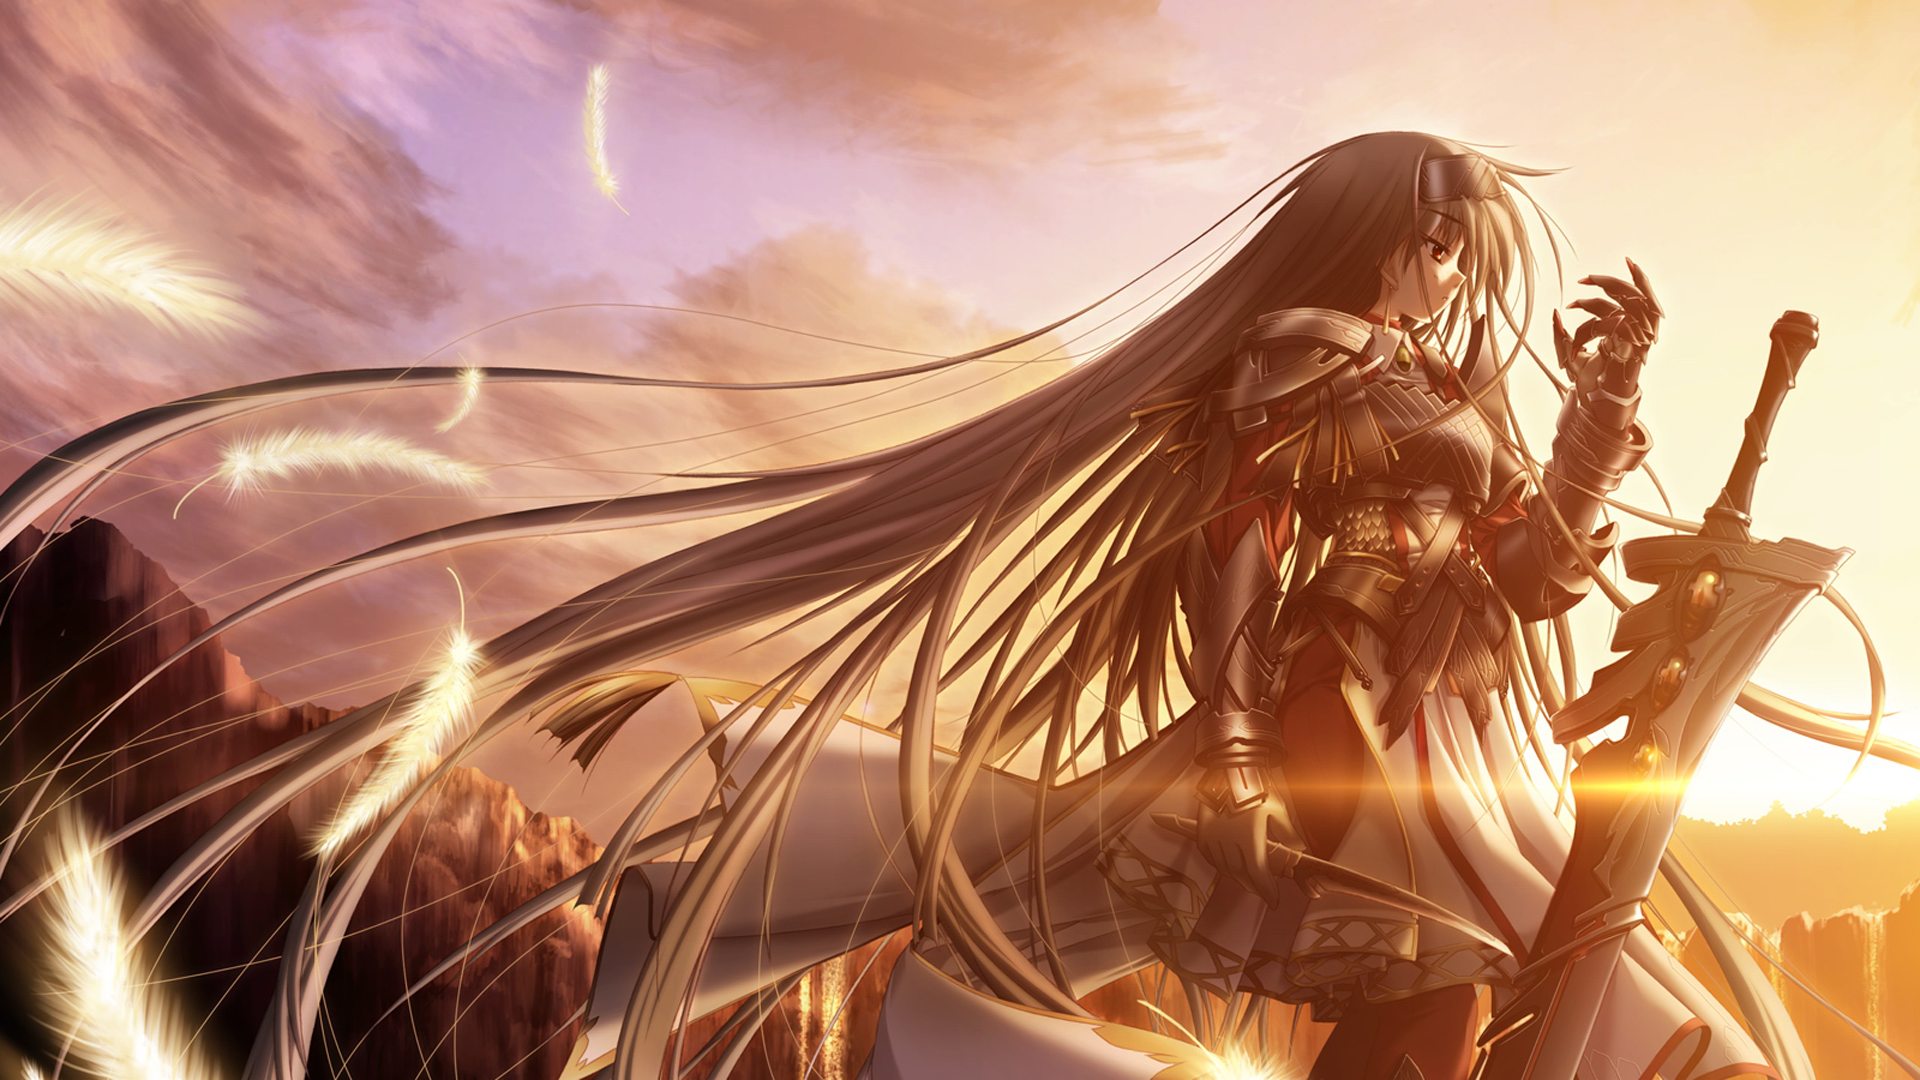 Anime Wallpaper With Sword